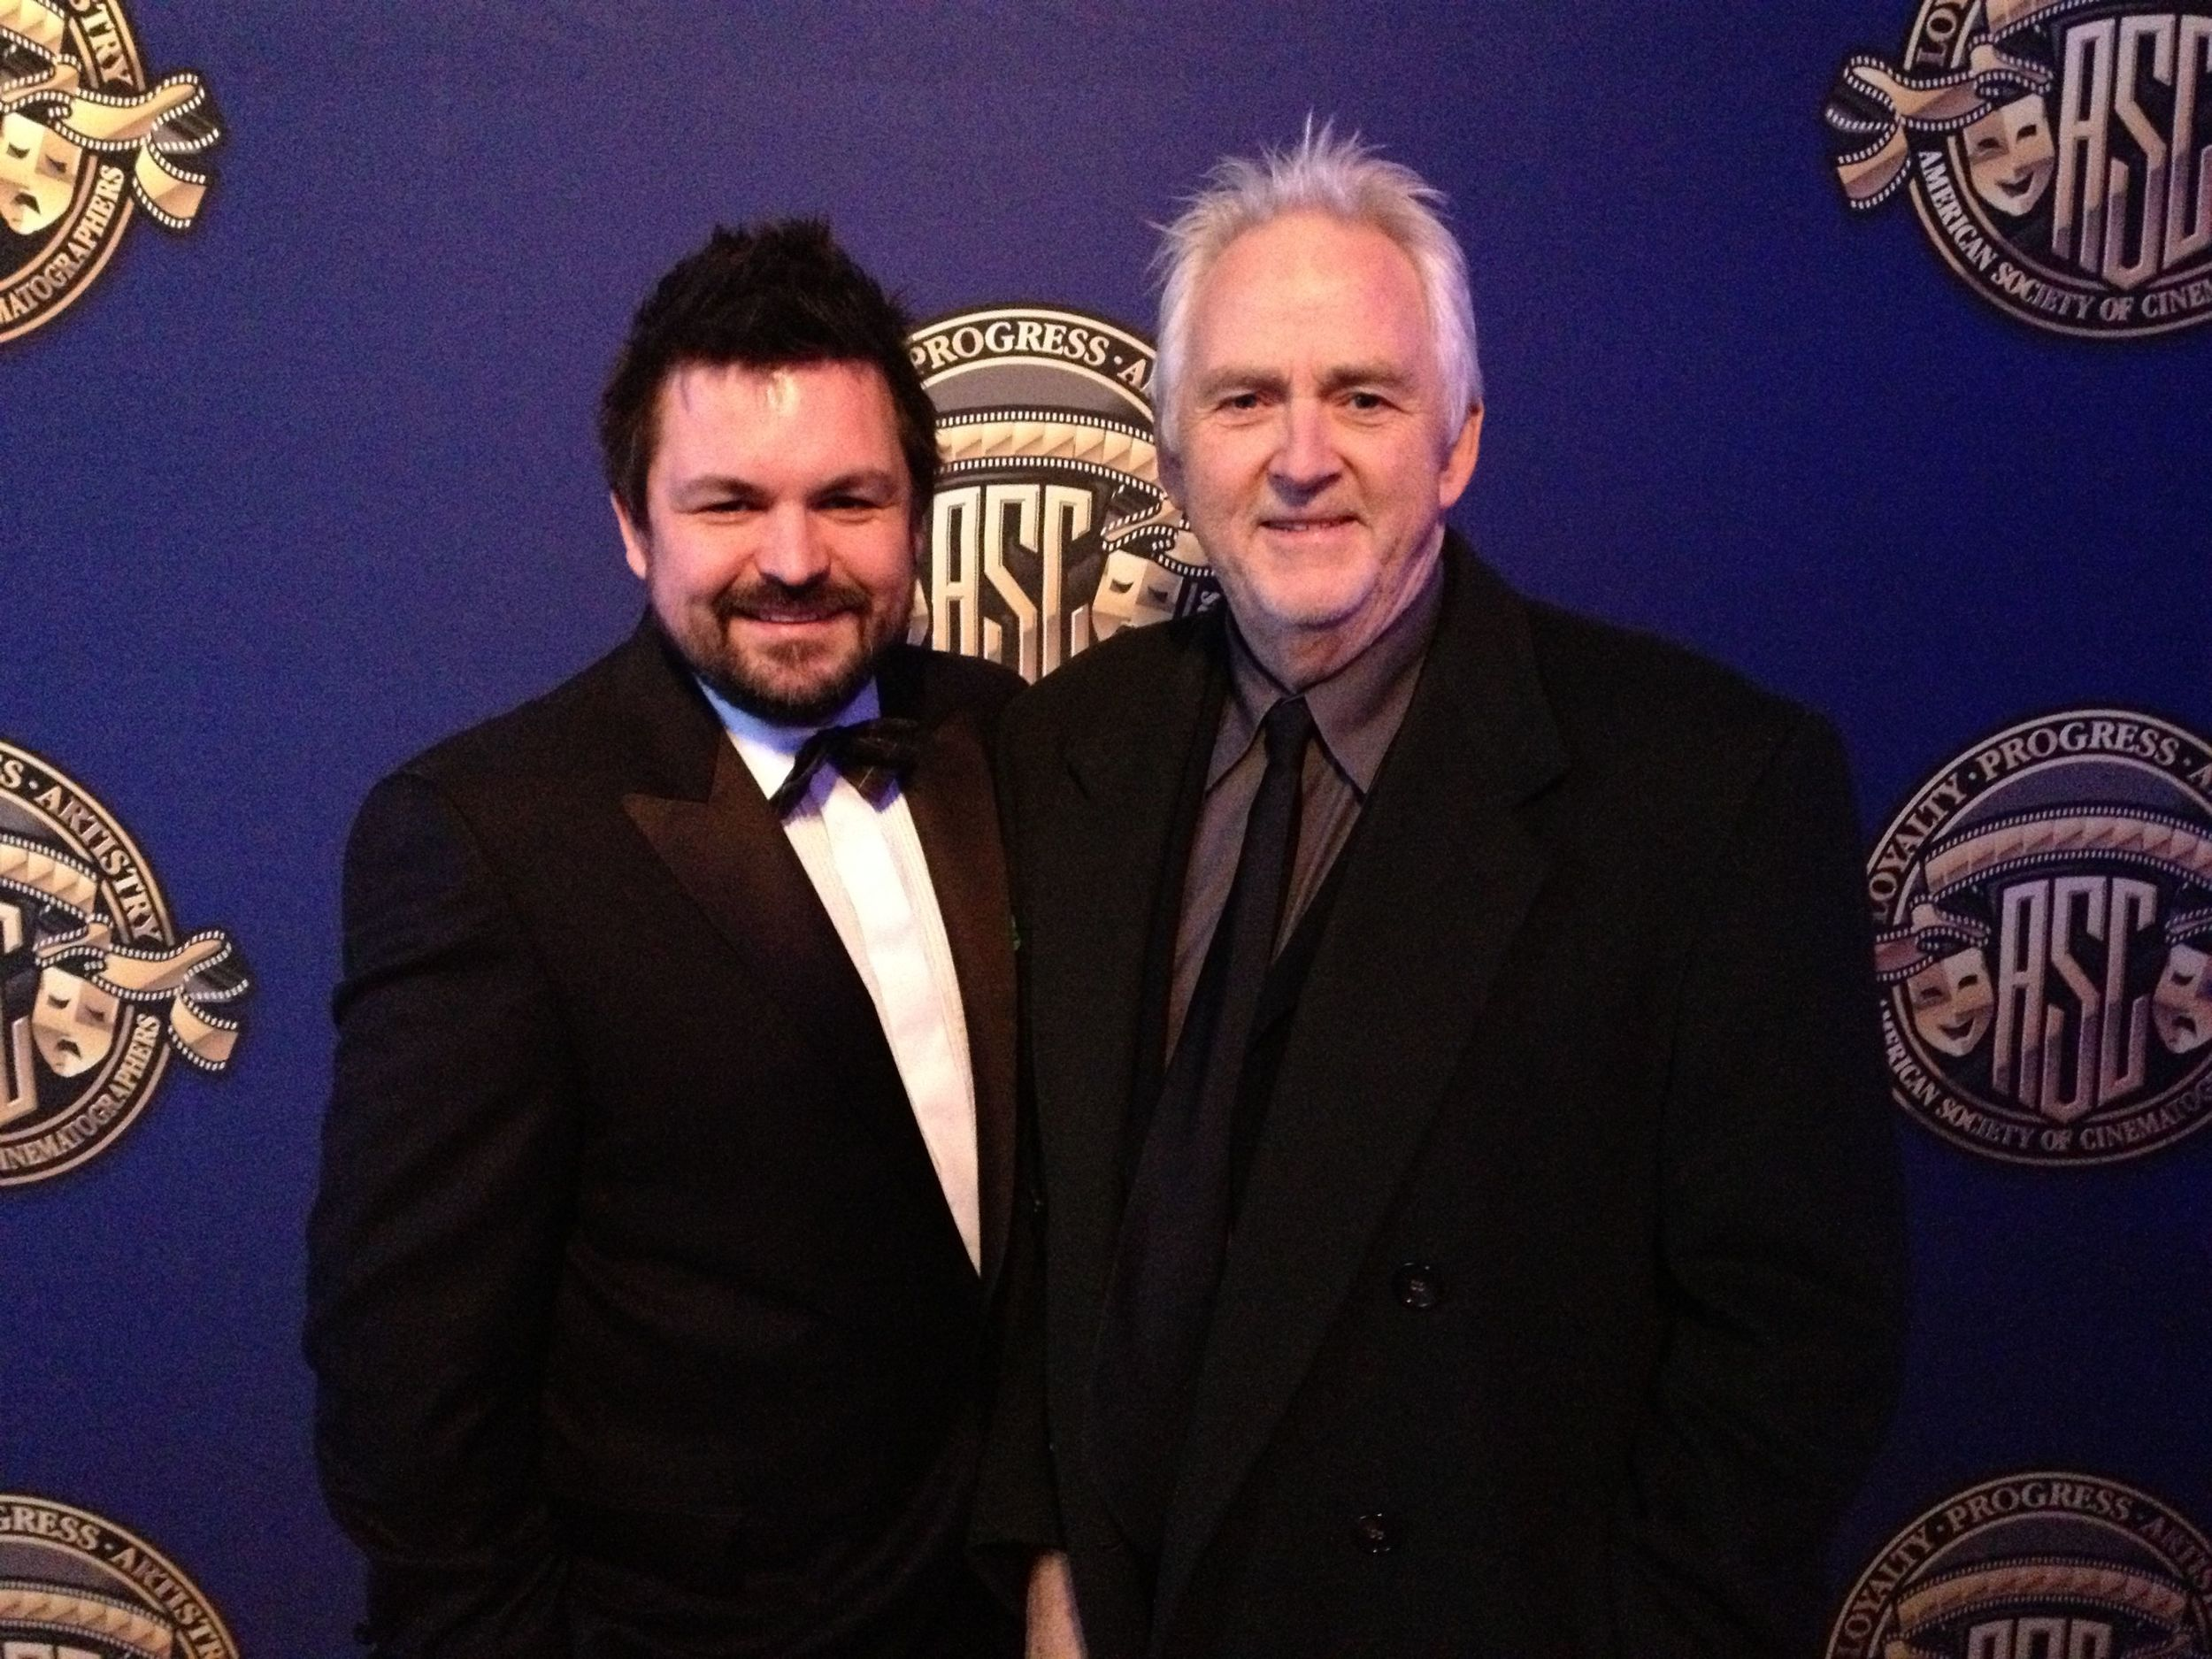 Den Lennie Attends the American Cinematographers Society Awards